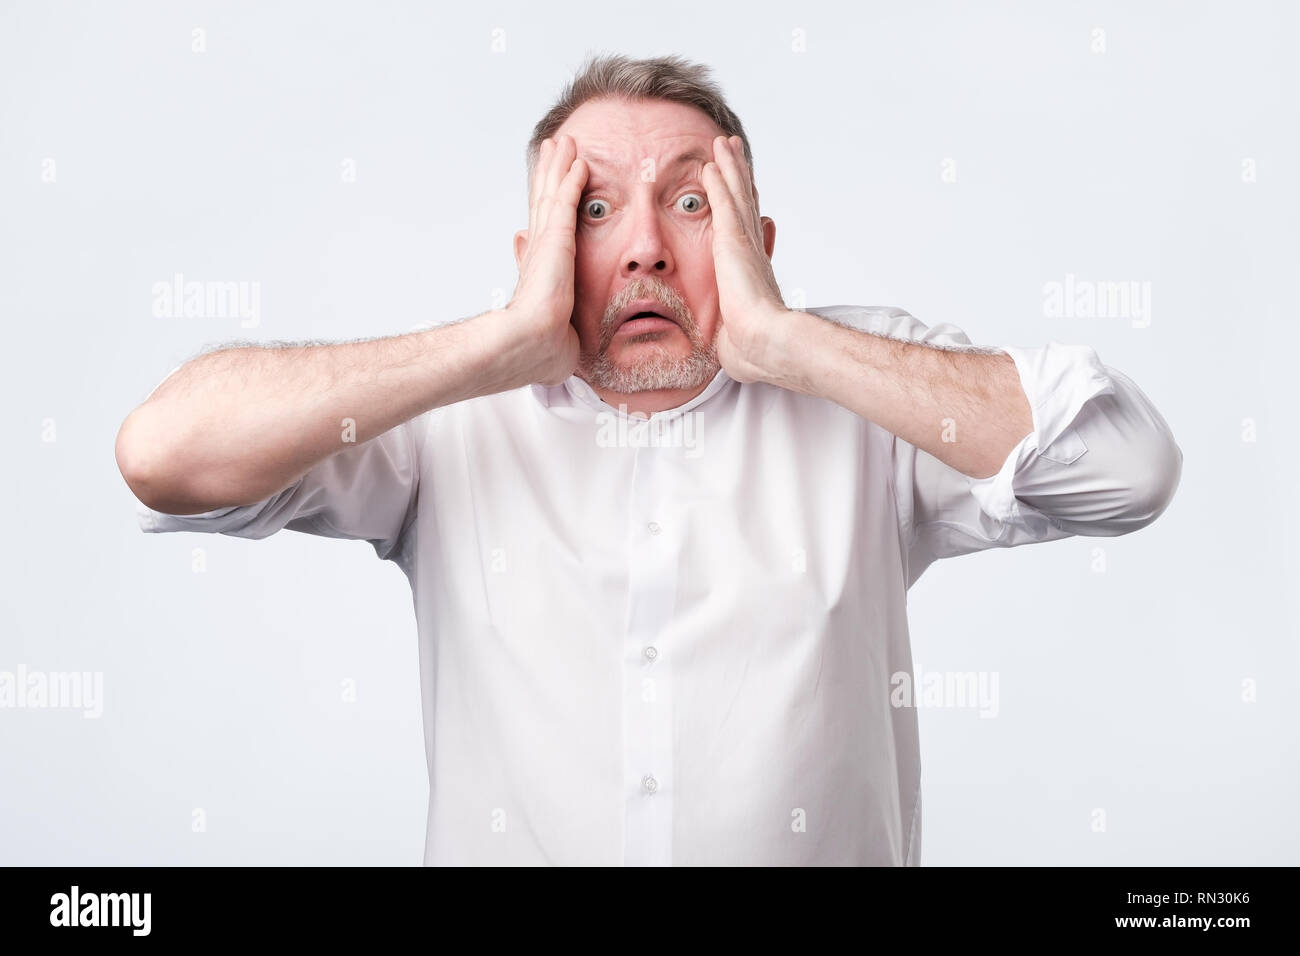 Crazy desperate senior man being shocked looking at camera trembling with fear. - Stock Image